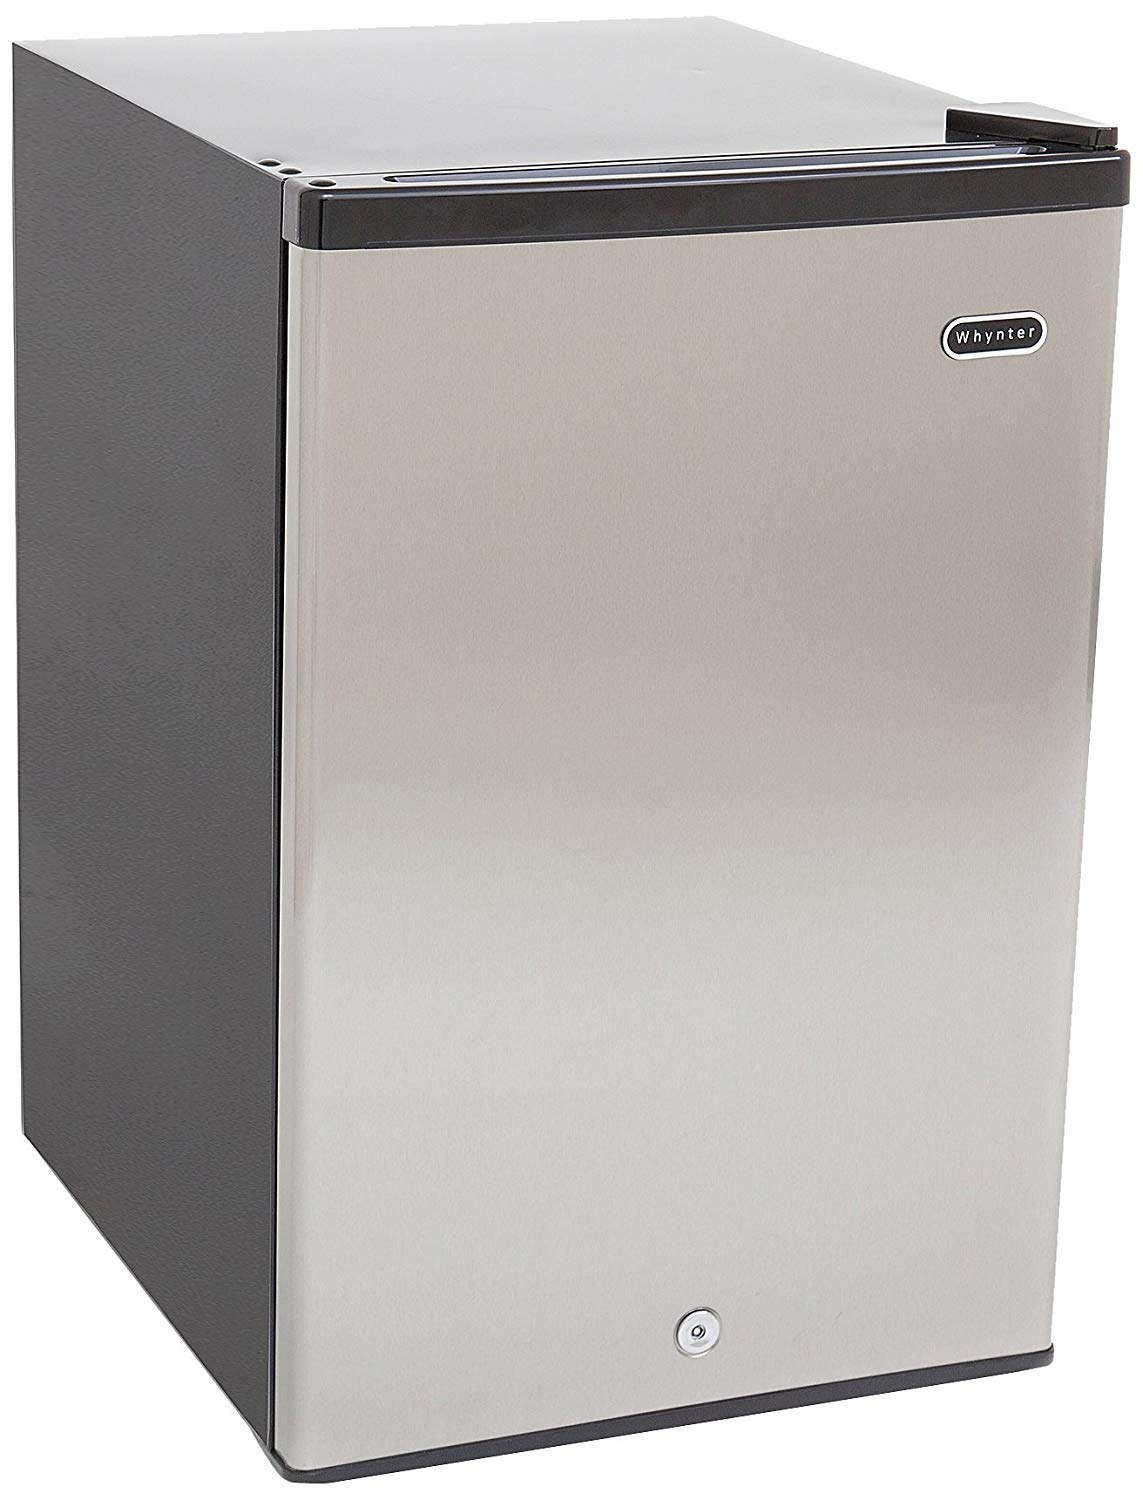 Whynter Upright Freezer